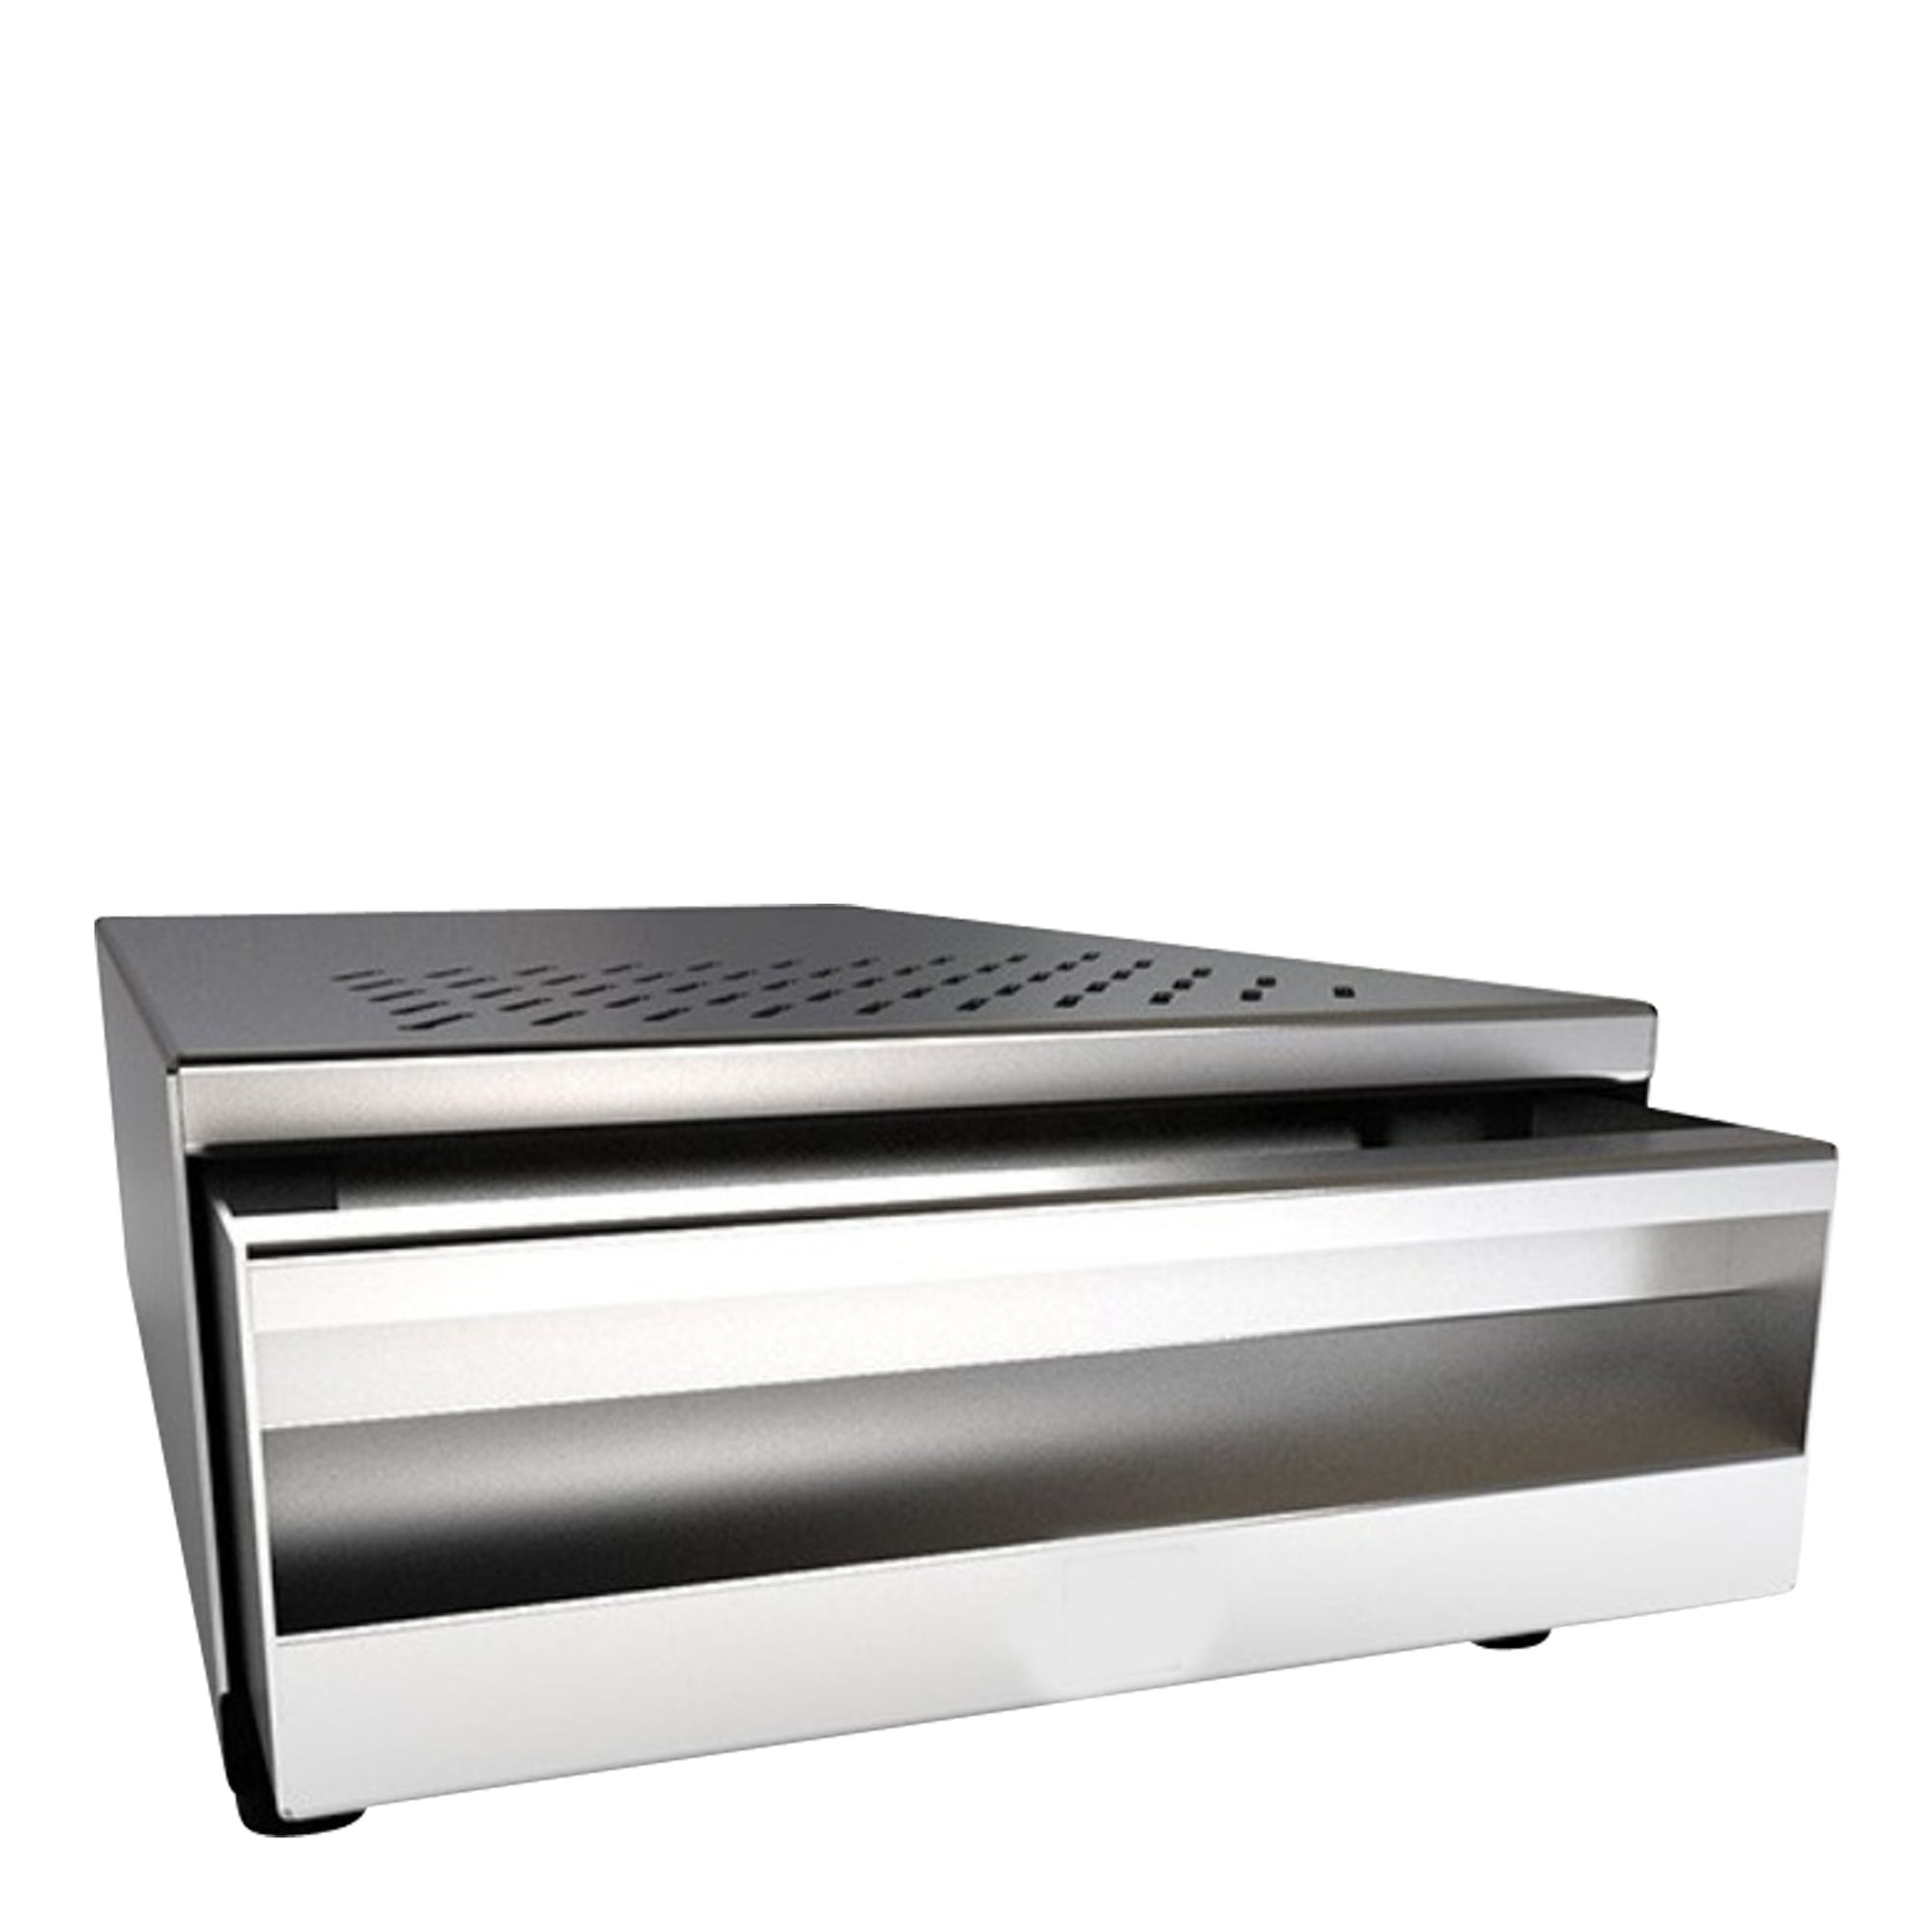 Espresso Gear Stainless Knockbox Drawer - Espresso Gear